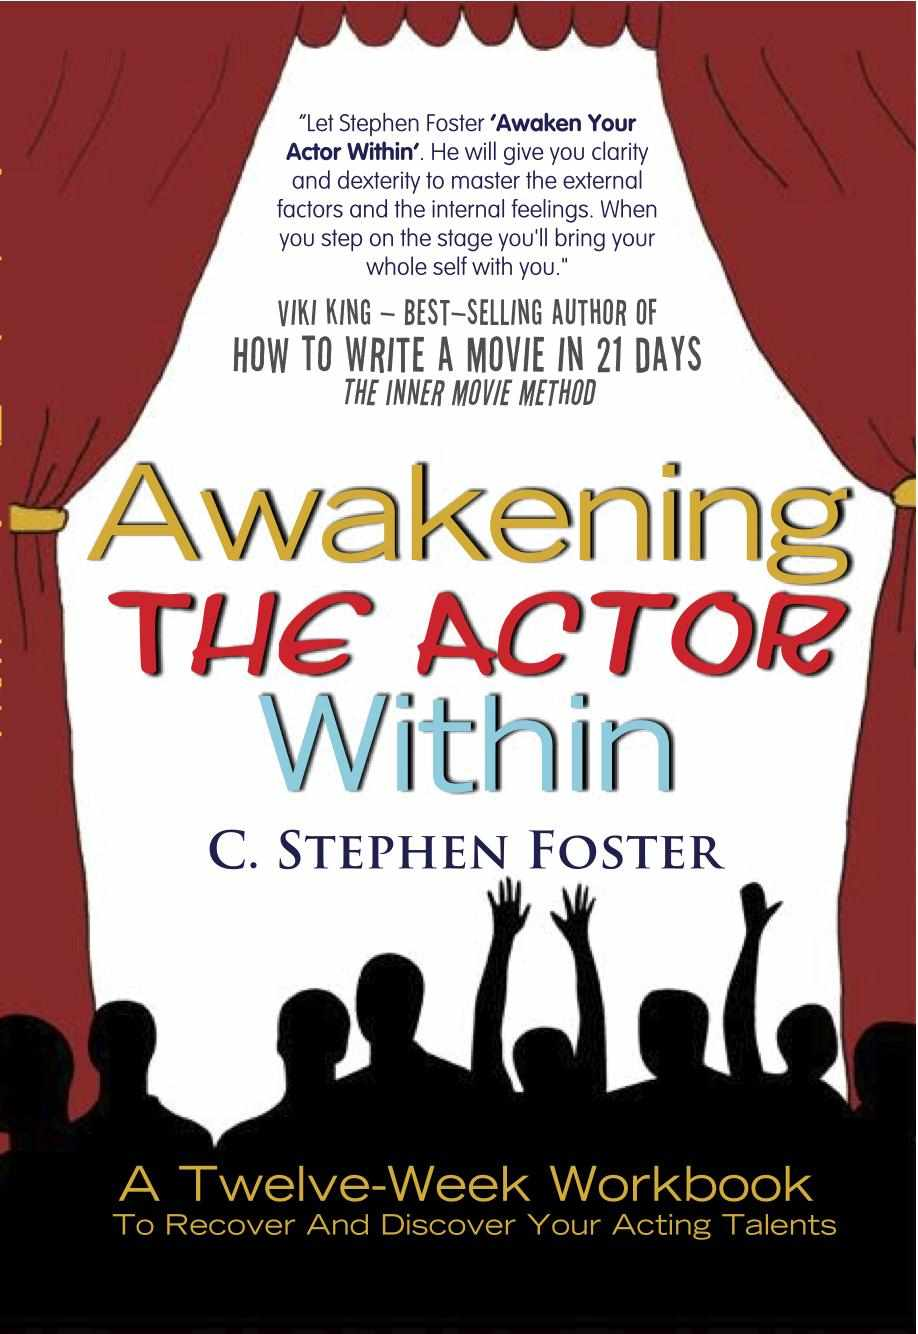 12 weeks to recover and discover your acting talents